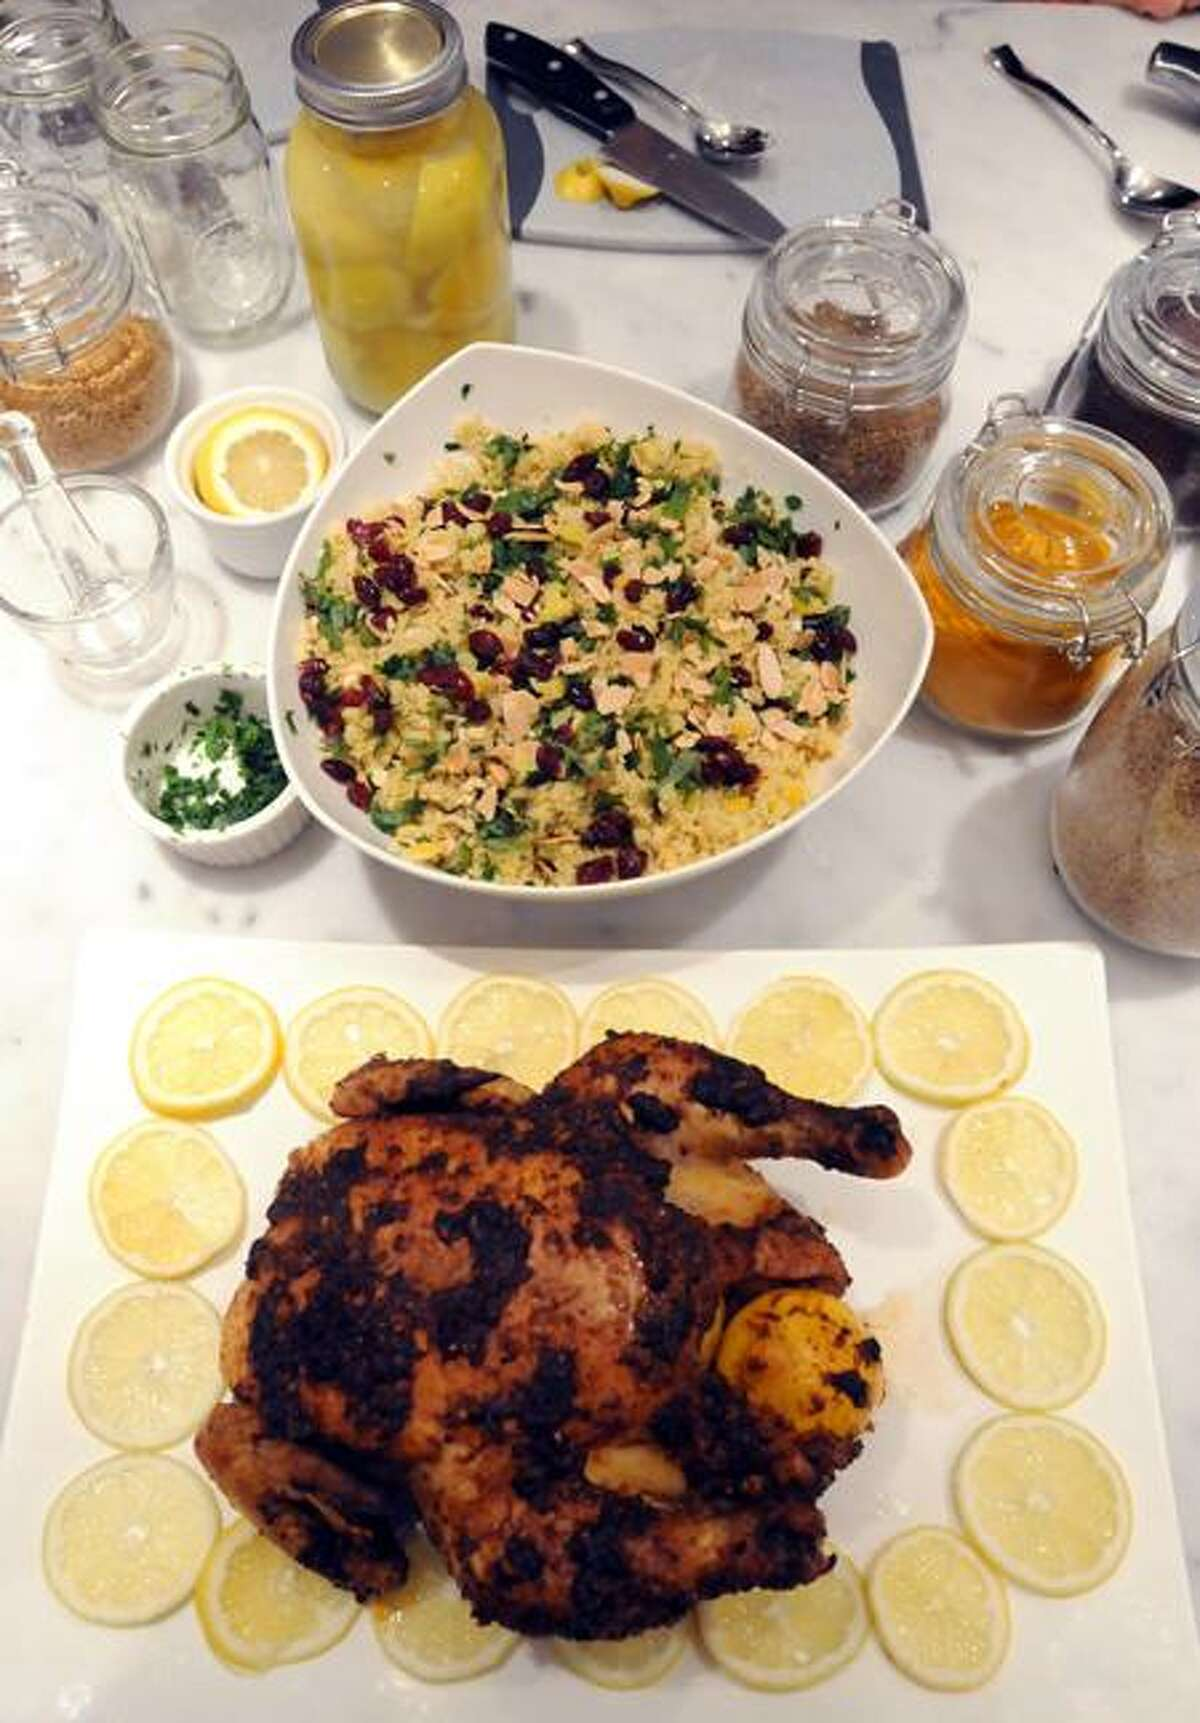 Heide Lang's Fig Cooking School made a Moroccan chicken and couscous meal.